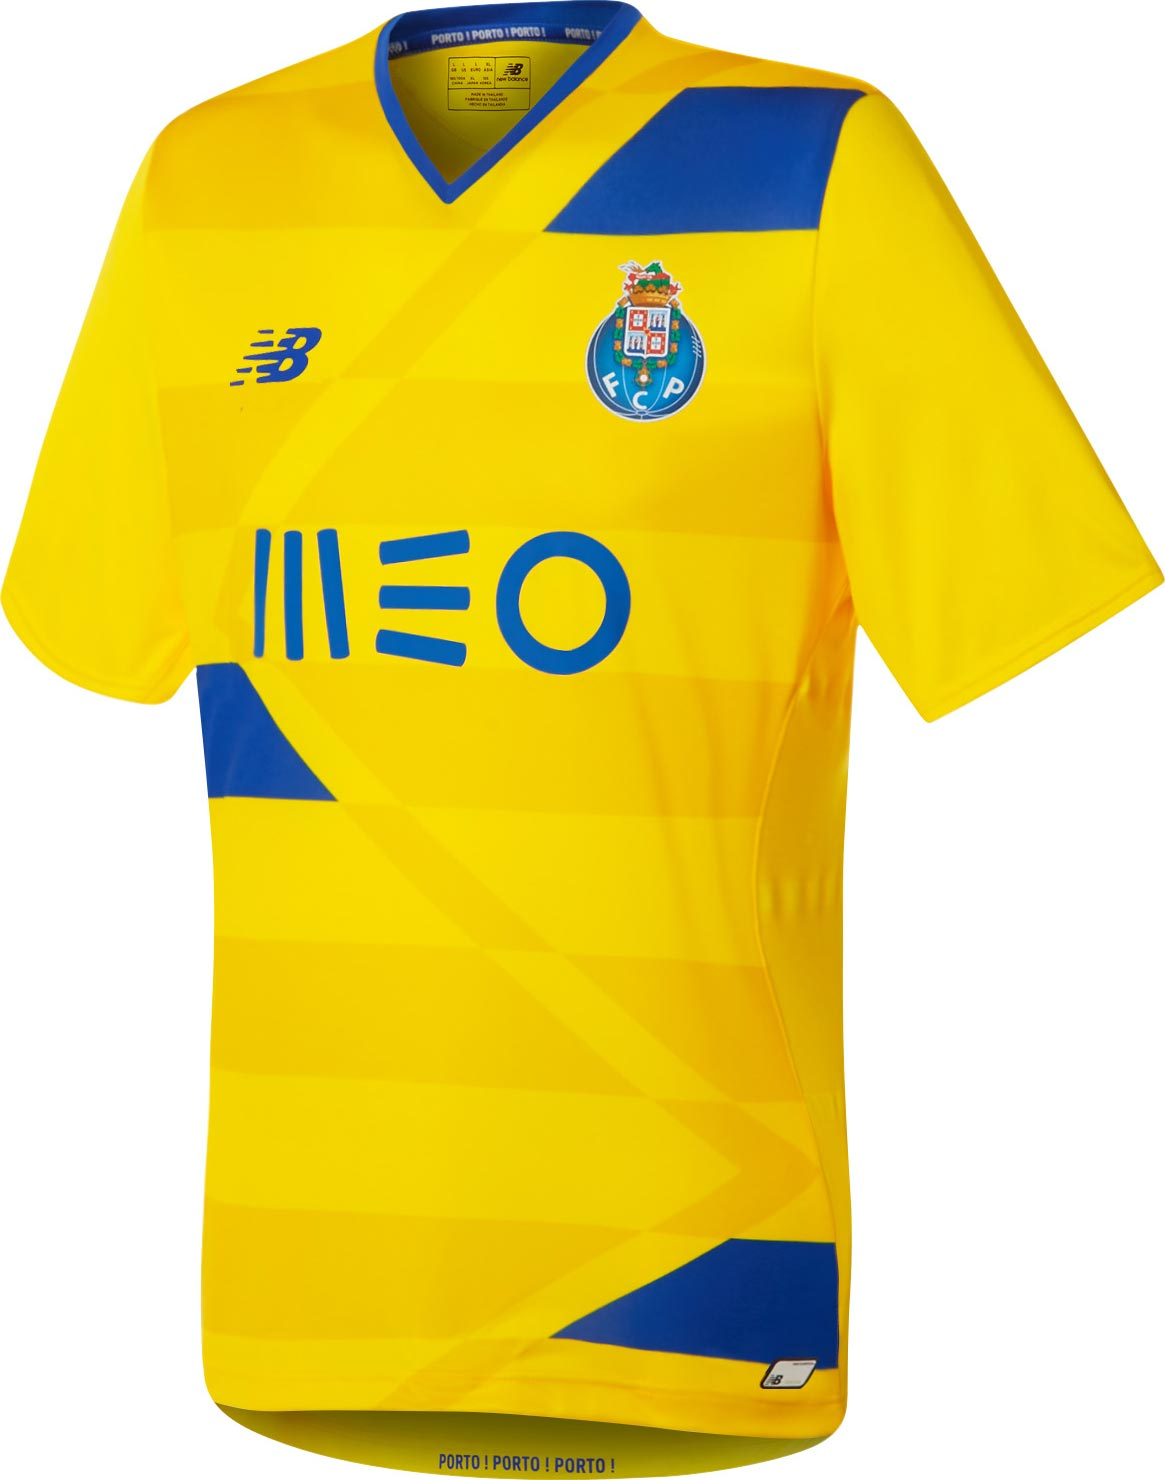 FC Porto 2016 17 Third Kit Released e4a5308c0